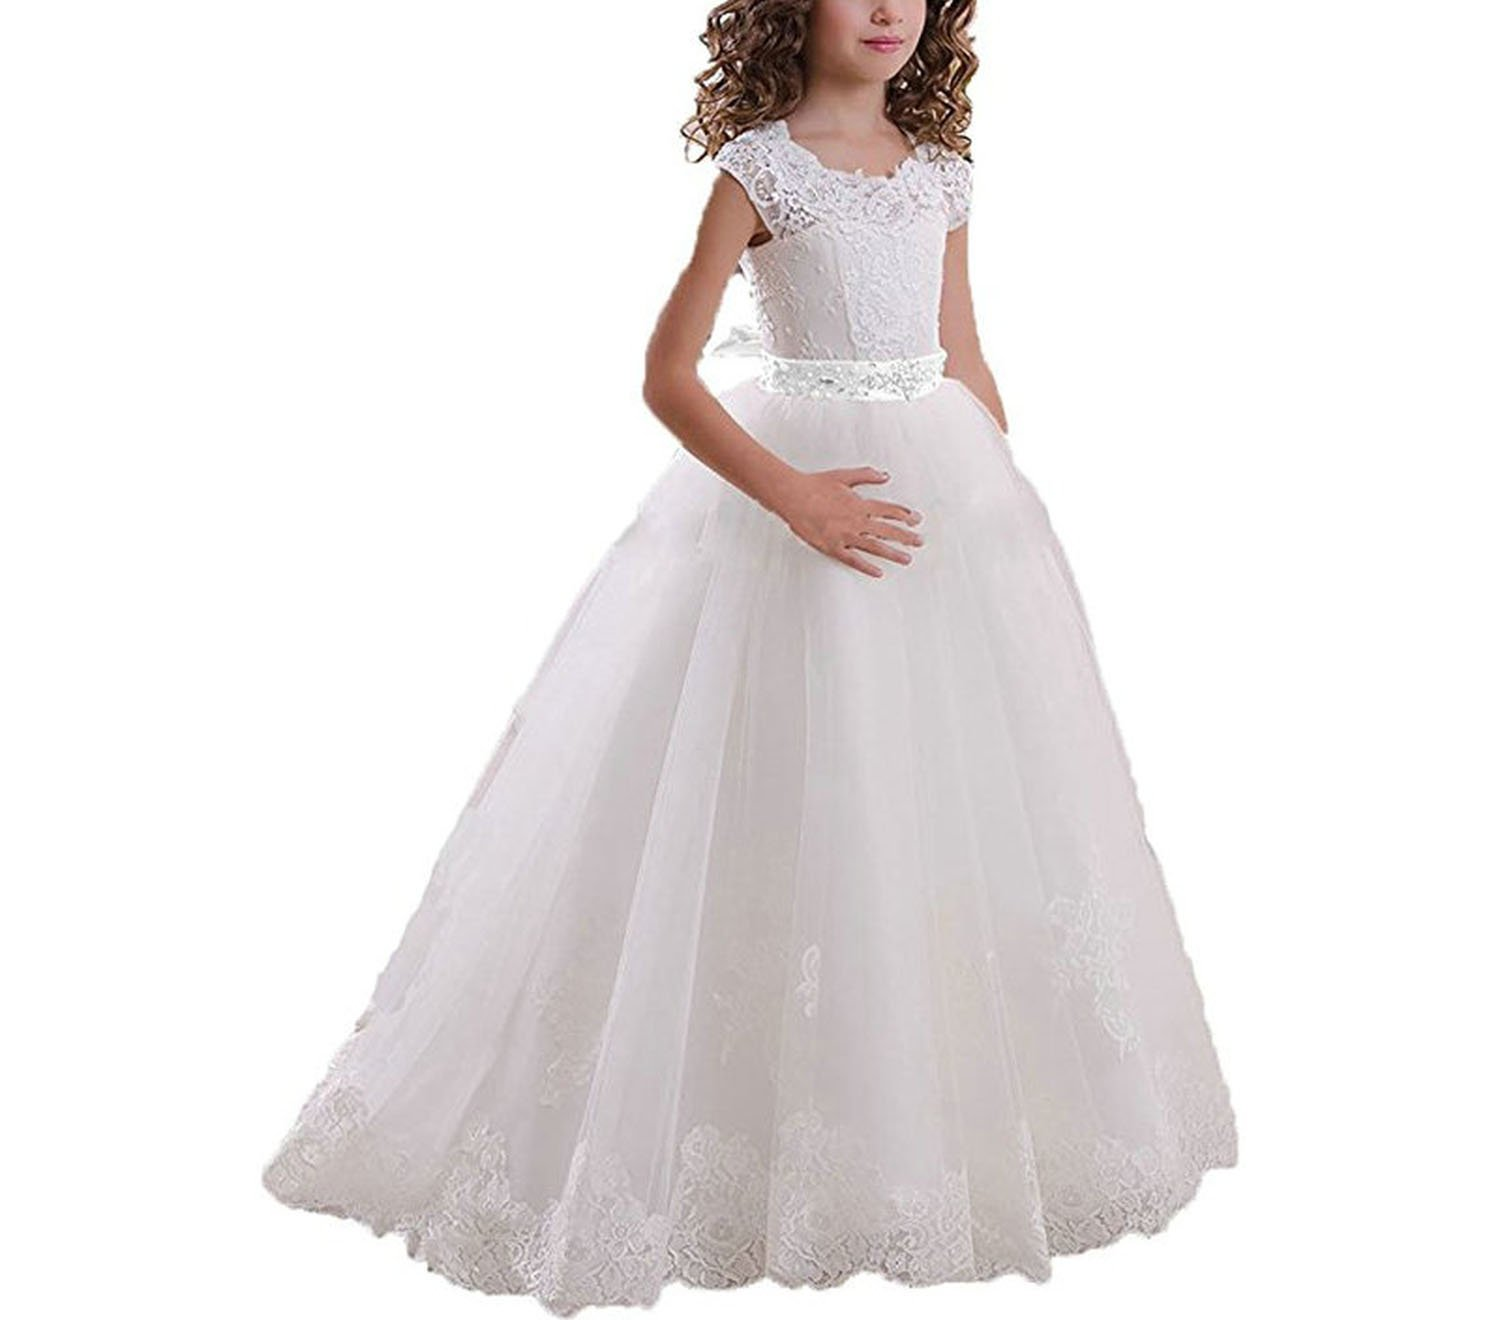 Lace White Flower Girl Dresses for Weddings Belt Bow Girls Pageant Dresses First Communion Dresses,Ivory and White Belt,Child-9